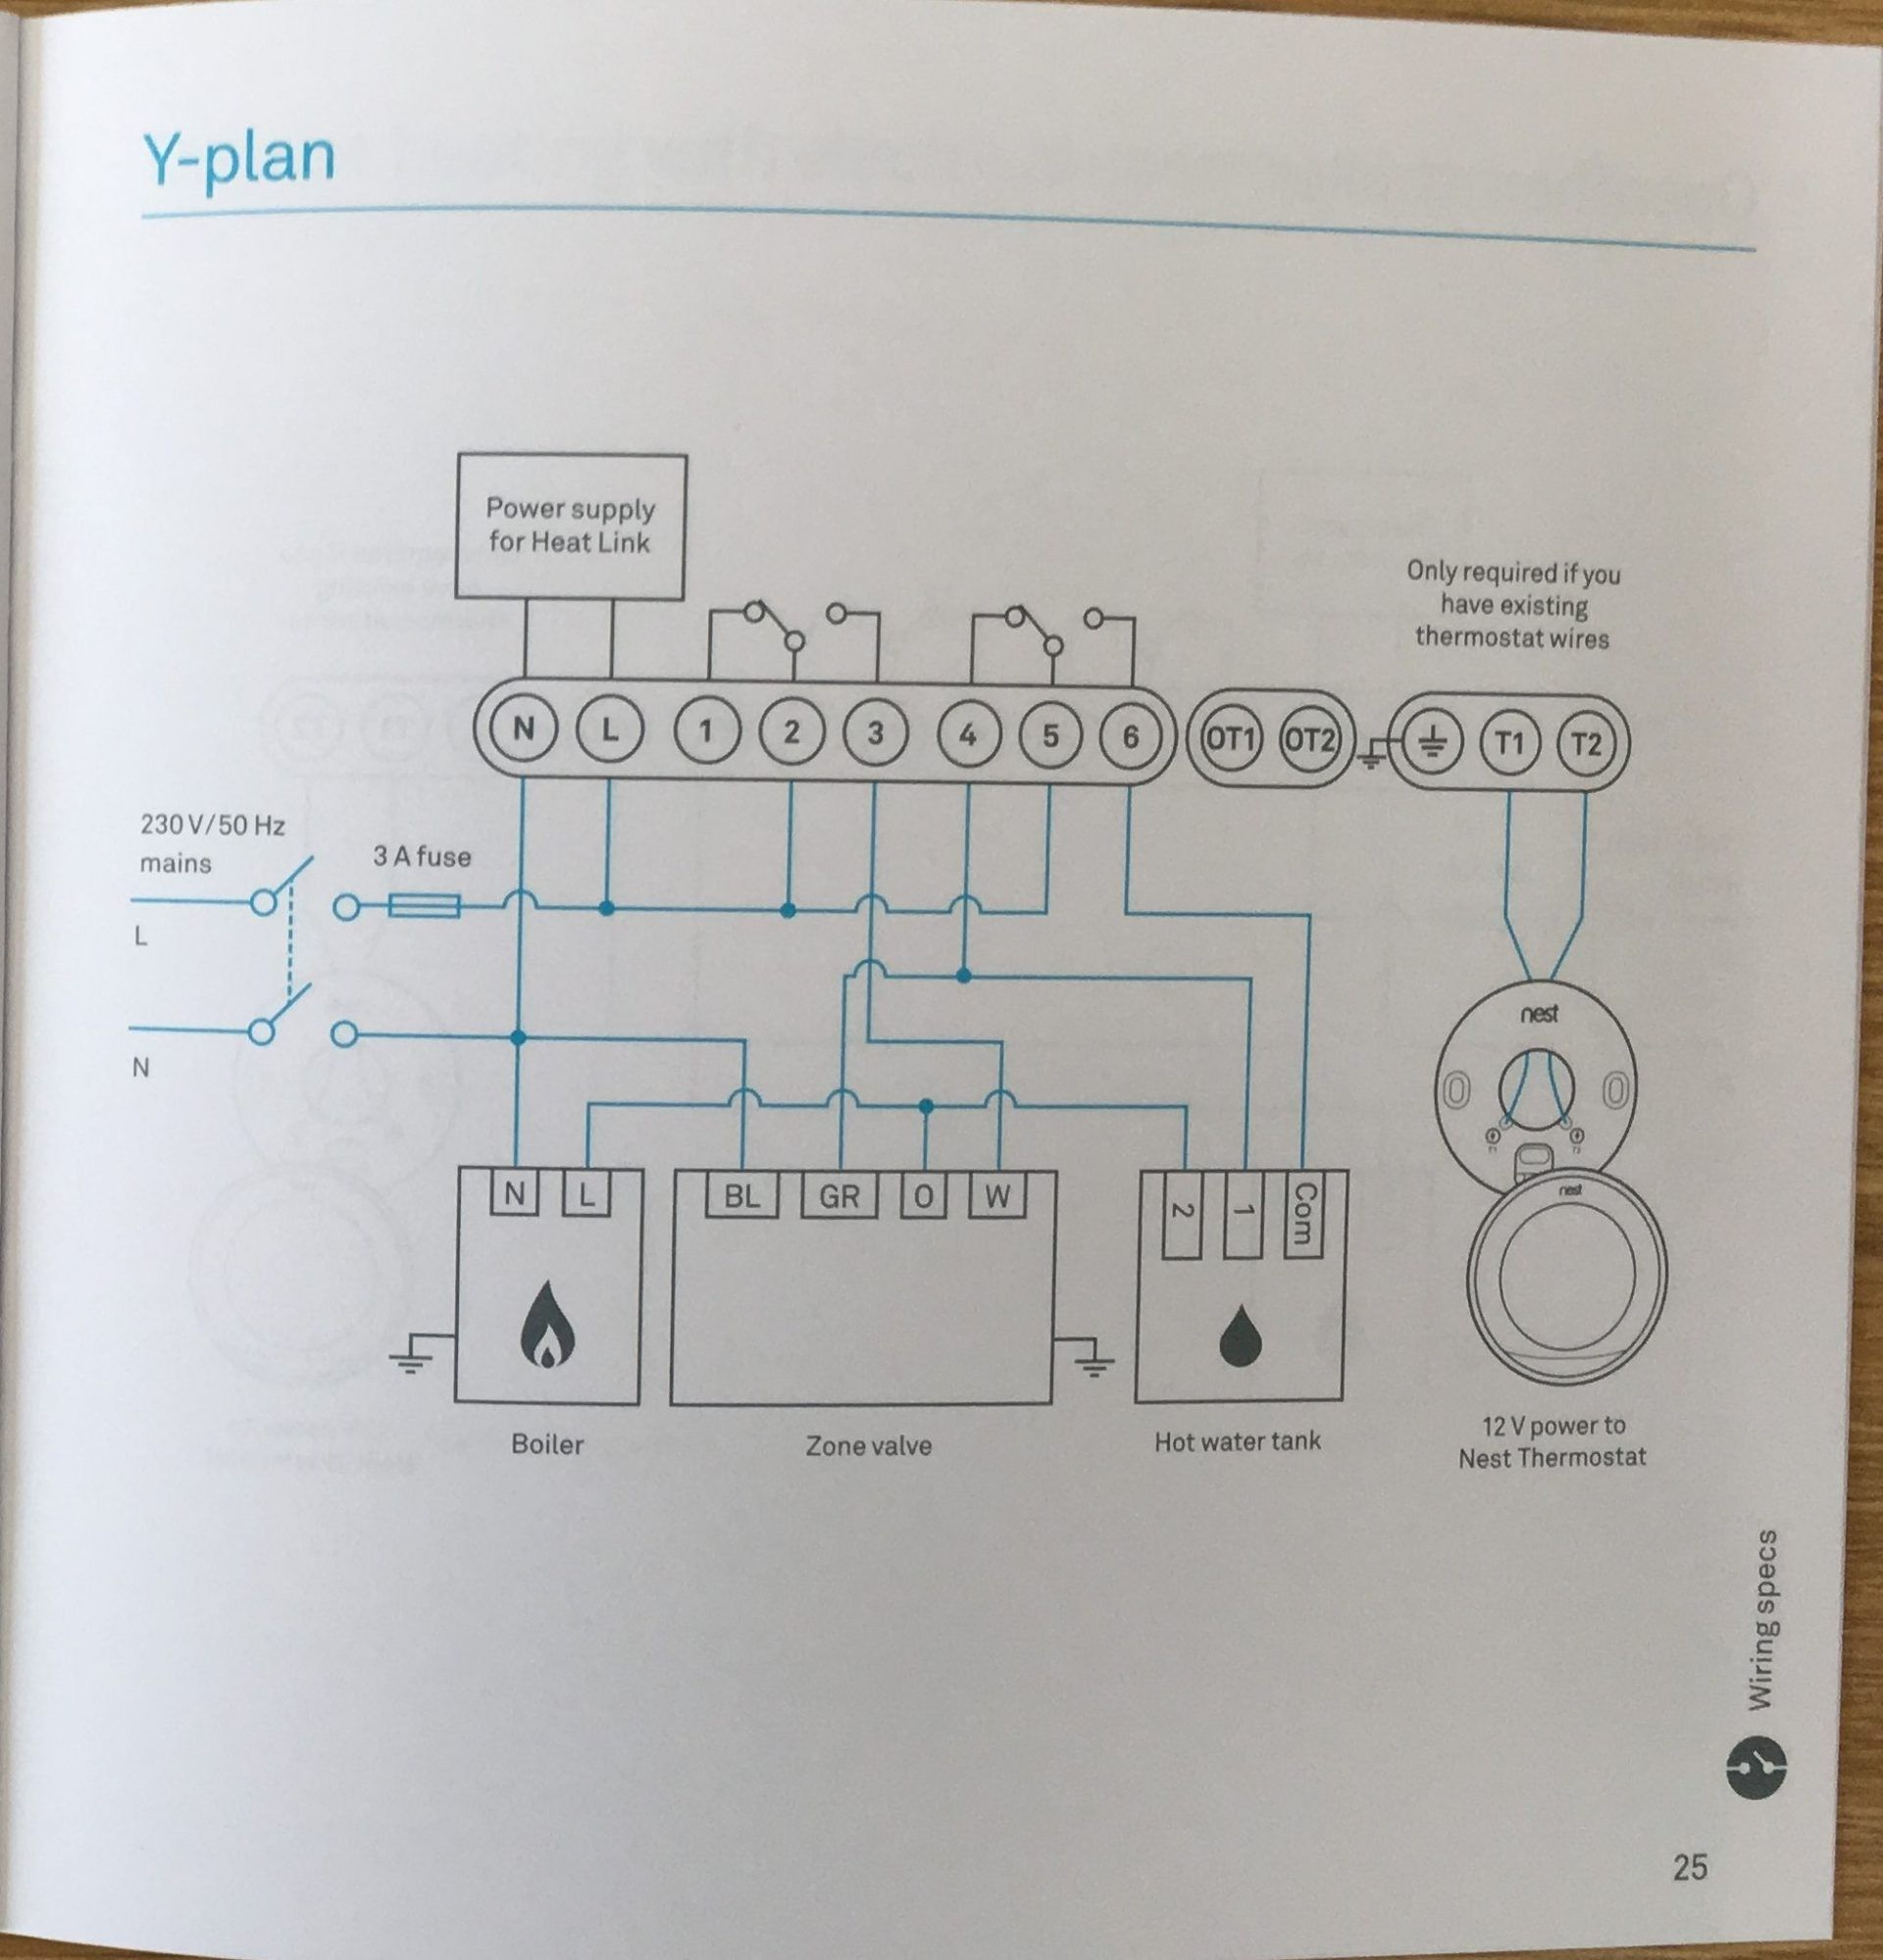 Luxury Wiring Diagram For A Y Plan Heating System Diagrams Digramssample Diagramimages Wiringdiagramsample Wirin Thermostat Wiring Diagram Heating Systems